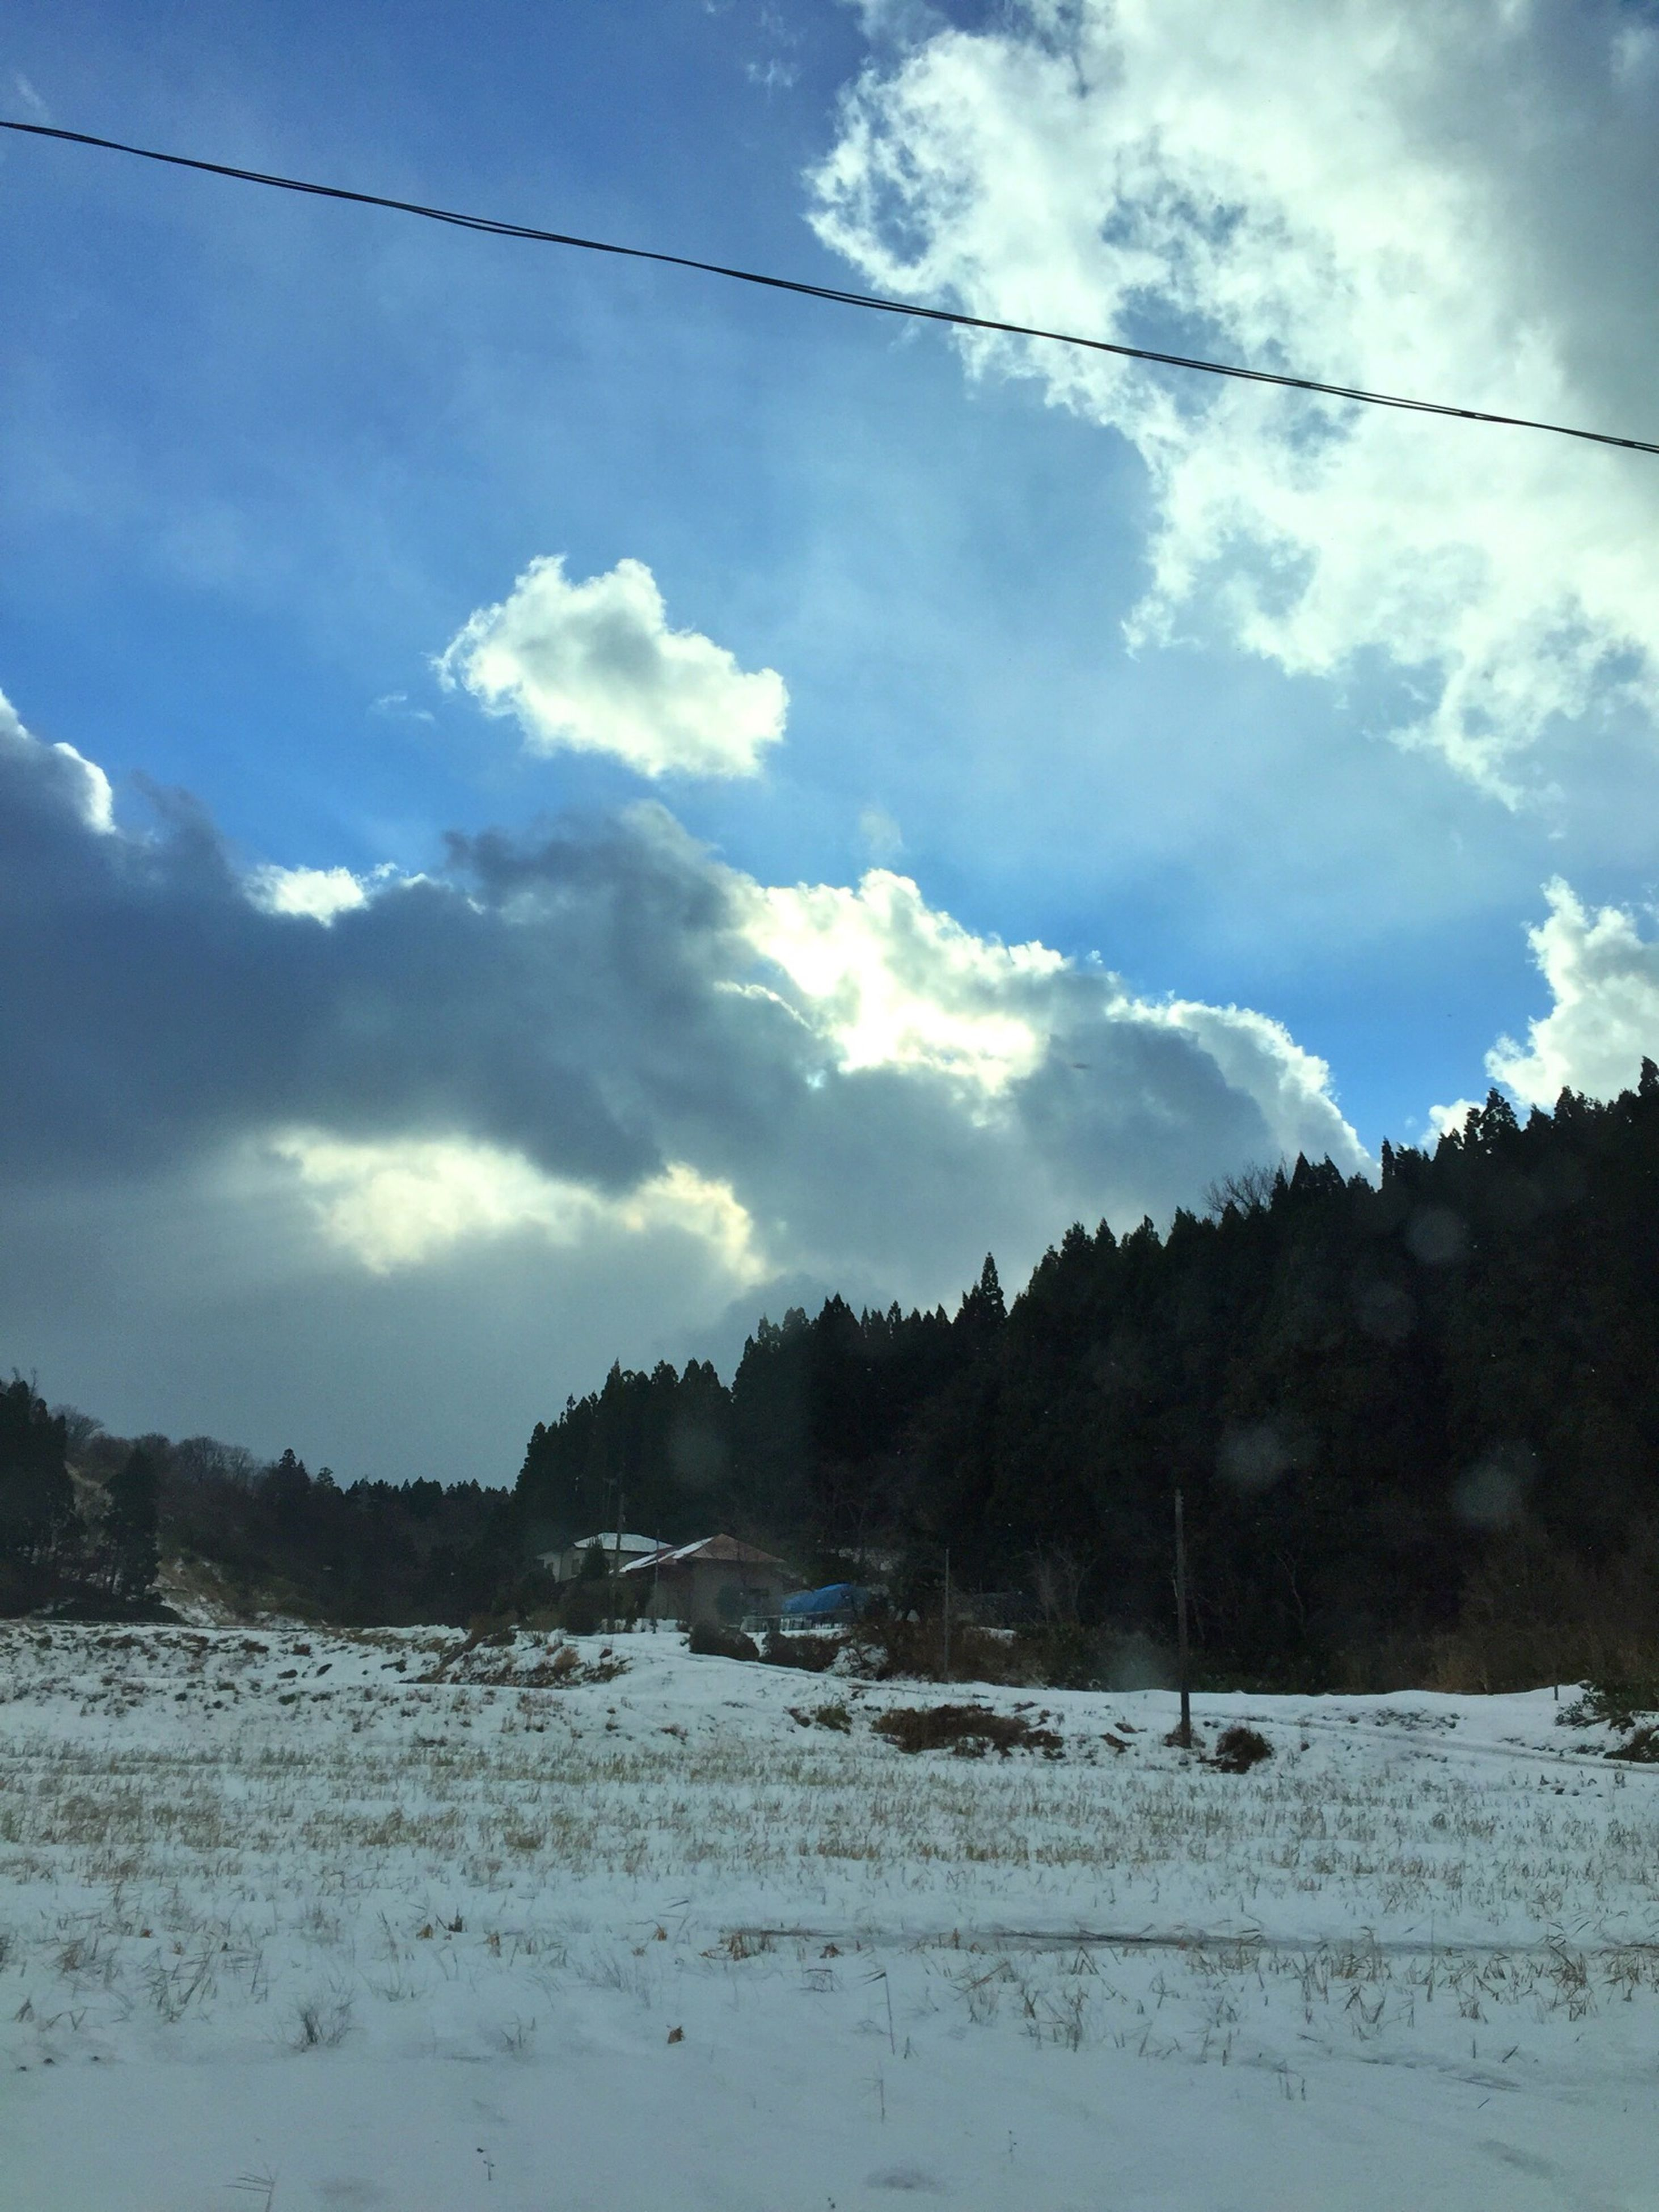 sky, cloud - sky, tranquil scene, tranquility, scenics, tree, cloud, beauty in nature, nature, cloudy, landscape, water, snow, day, outdoors, winter, non-urban scene, weather, no people, idyllic